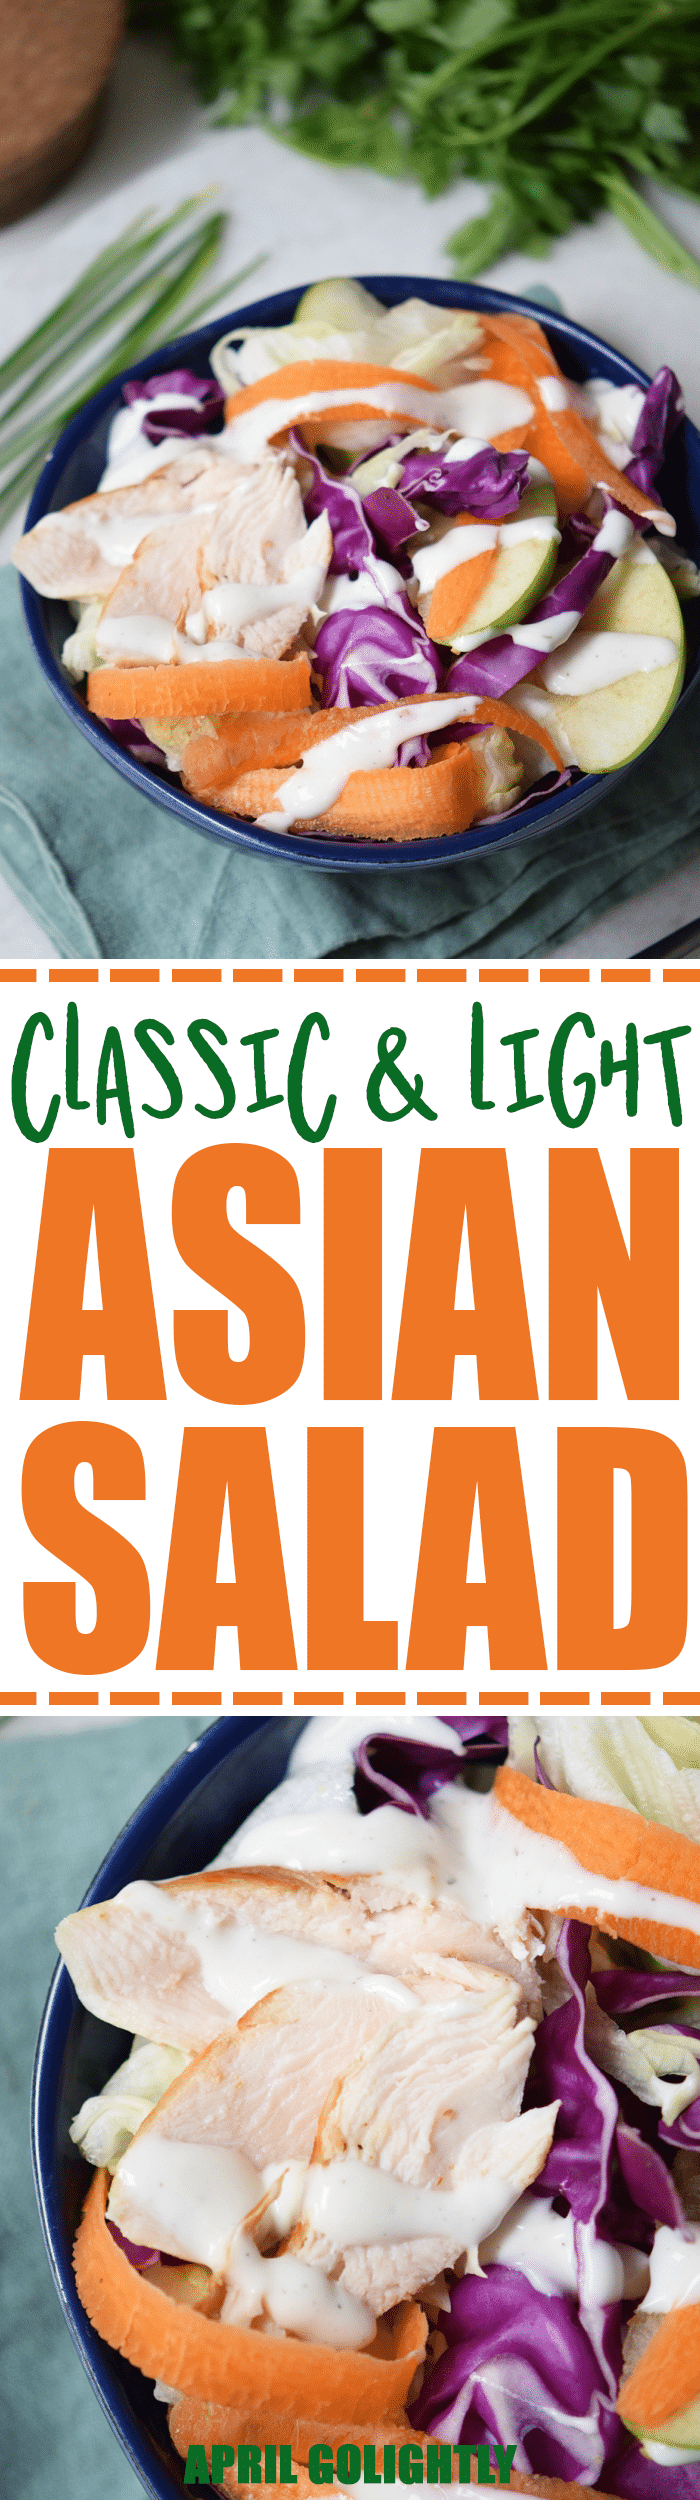 Classic Asian Salad recipe perfect for lunch or a light dinner made with cabbage, chicken breast, soy sauce, and greek yogurt